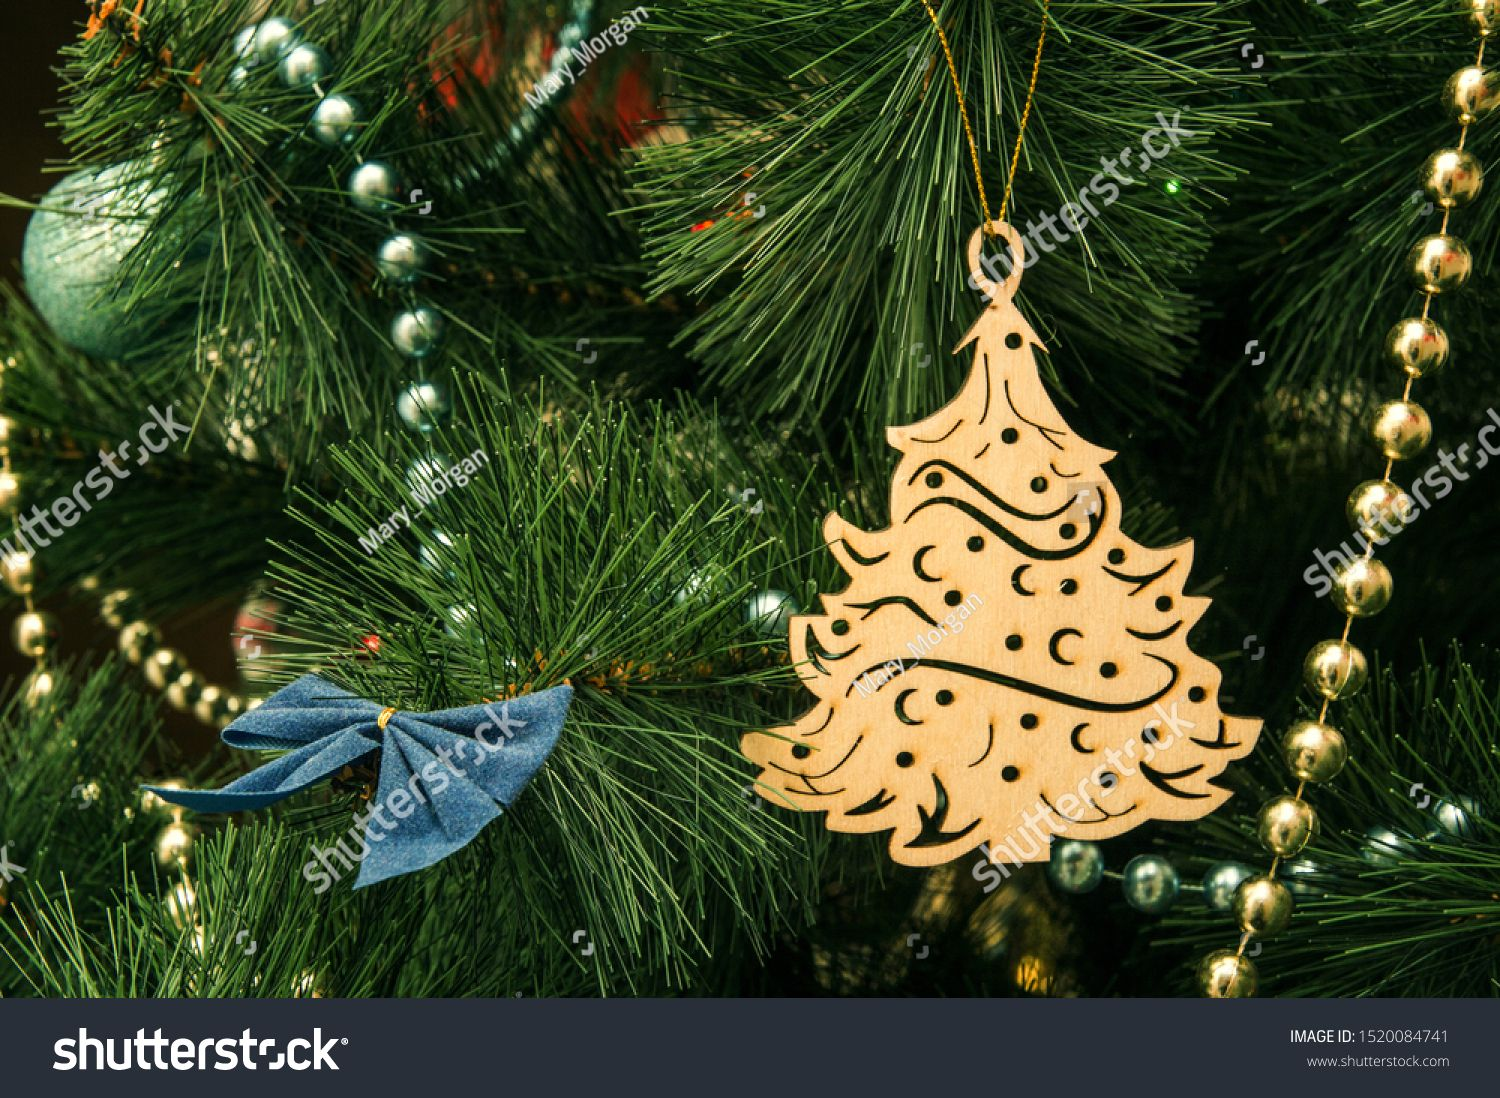 Close Up Macro Christmas Tree Decoration In The Form Of A Vintage Wooden Christmas Tree F Christmas Tree Decorations Wooden Christmas Trees Tree Decorations